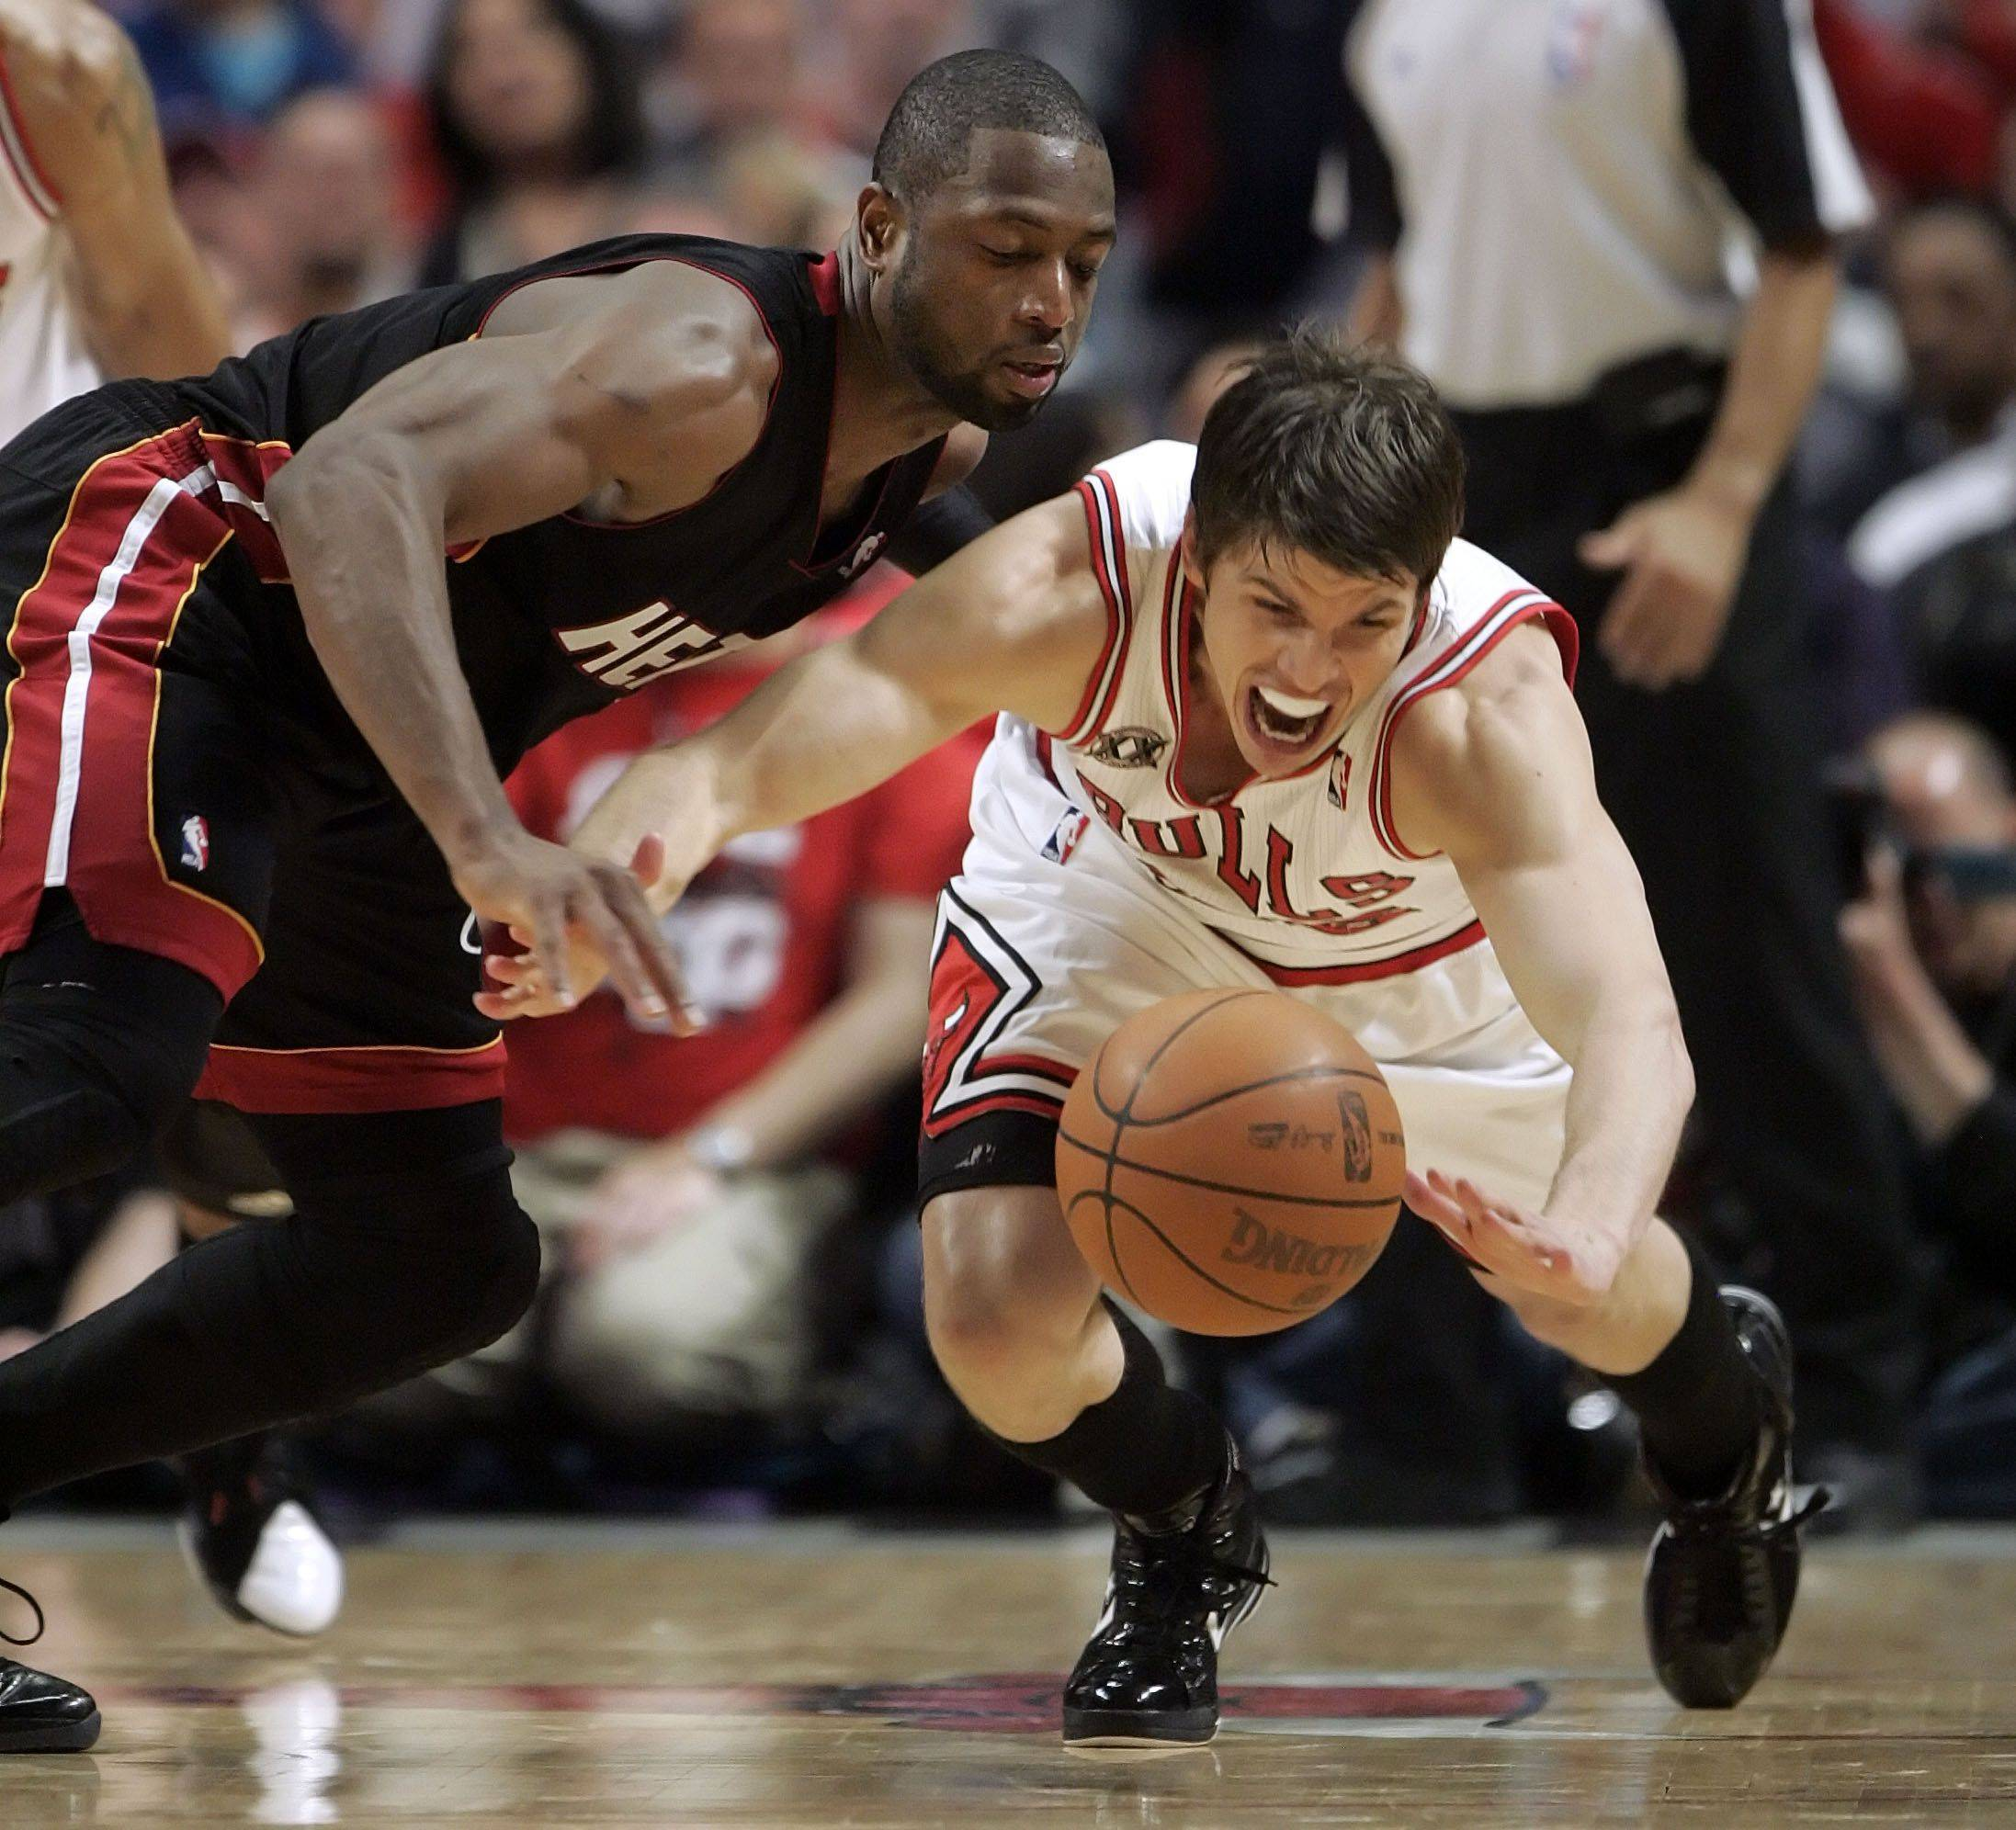 Chicago Bulls shooting guard Kyle Korver and Miami Heat shooting guard Dwyane Wade battle for a loose ball during game one of the Eastern Conference finals Sunday night at the United Center.